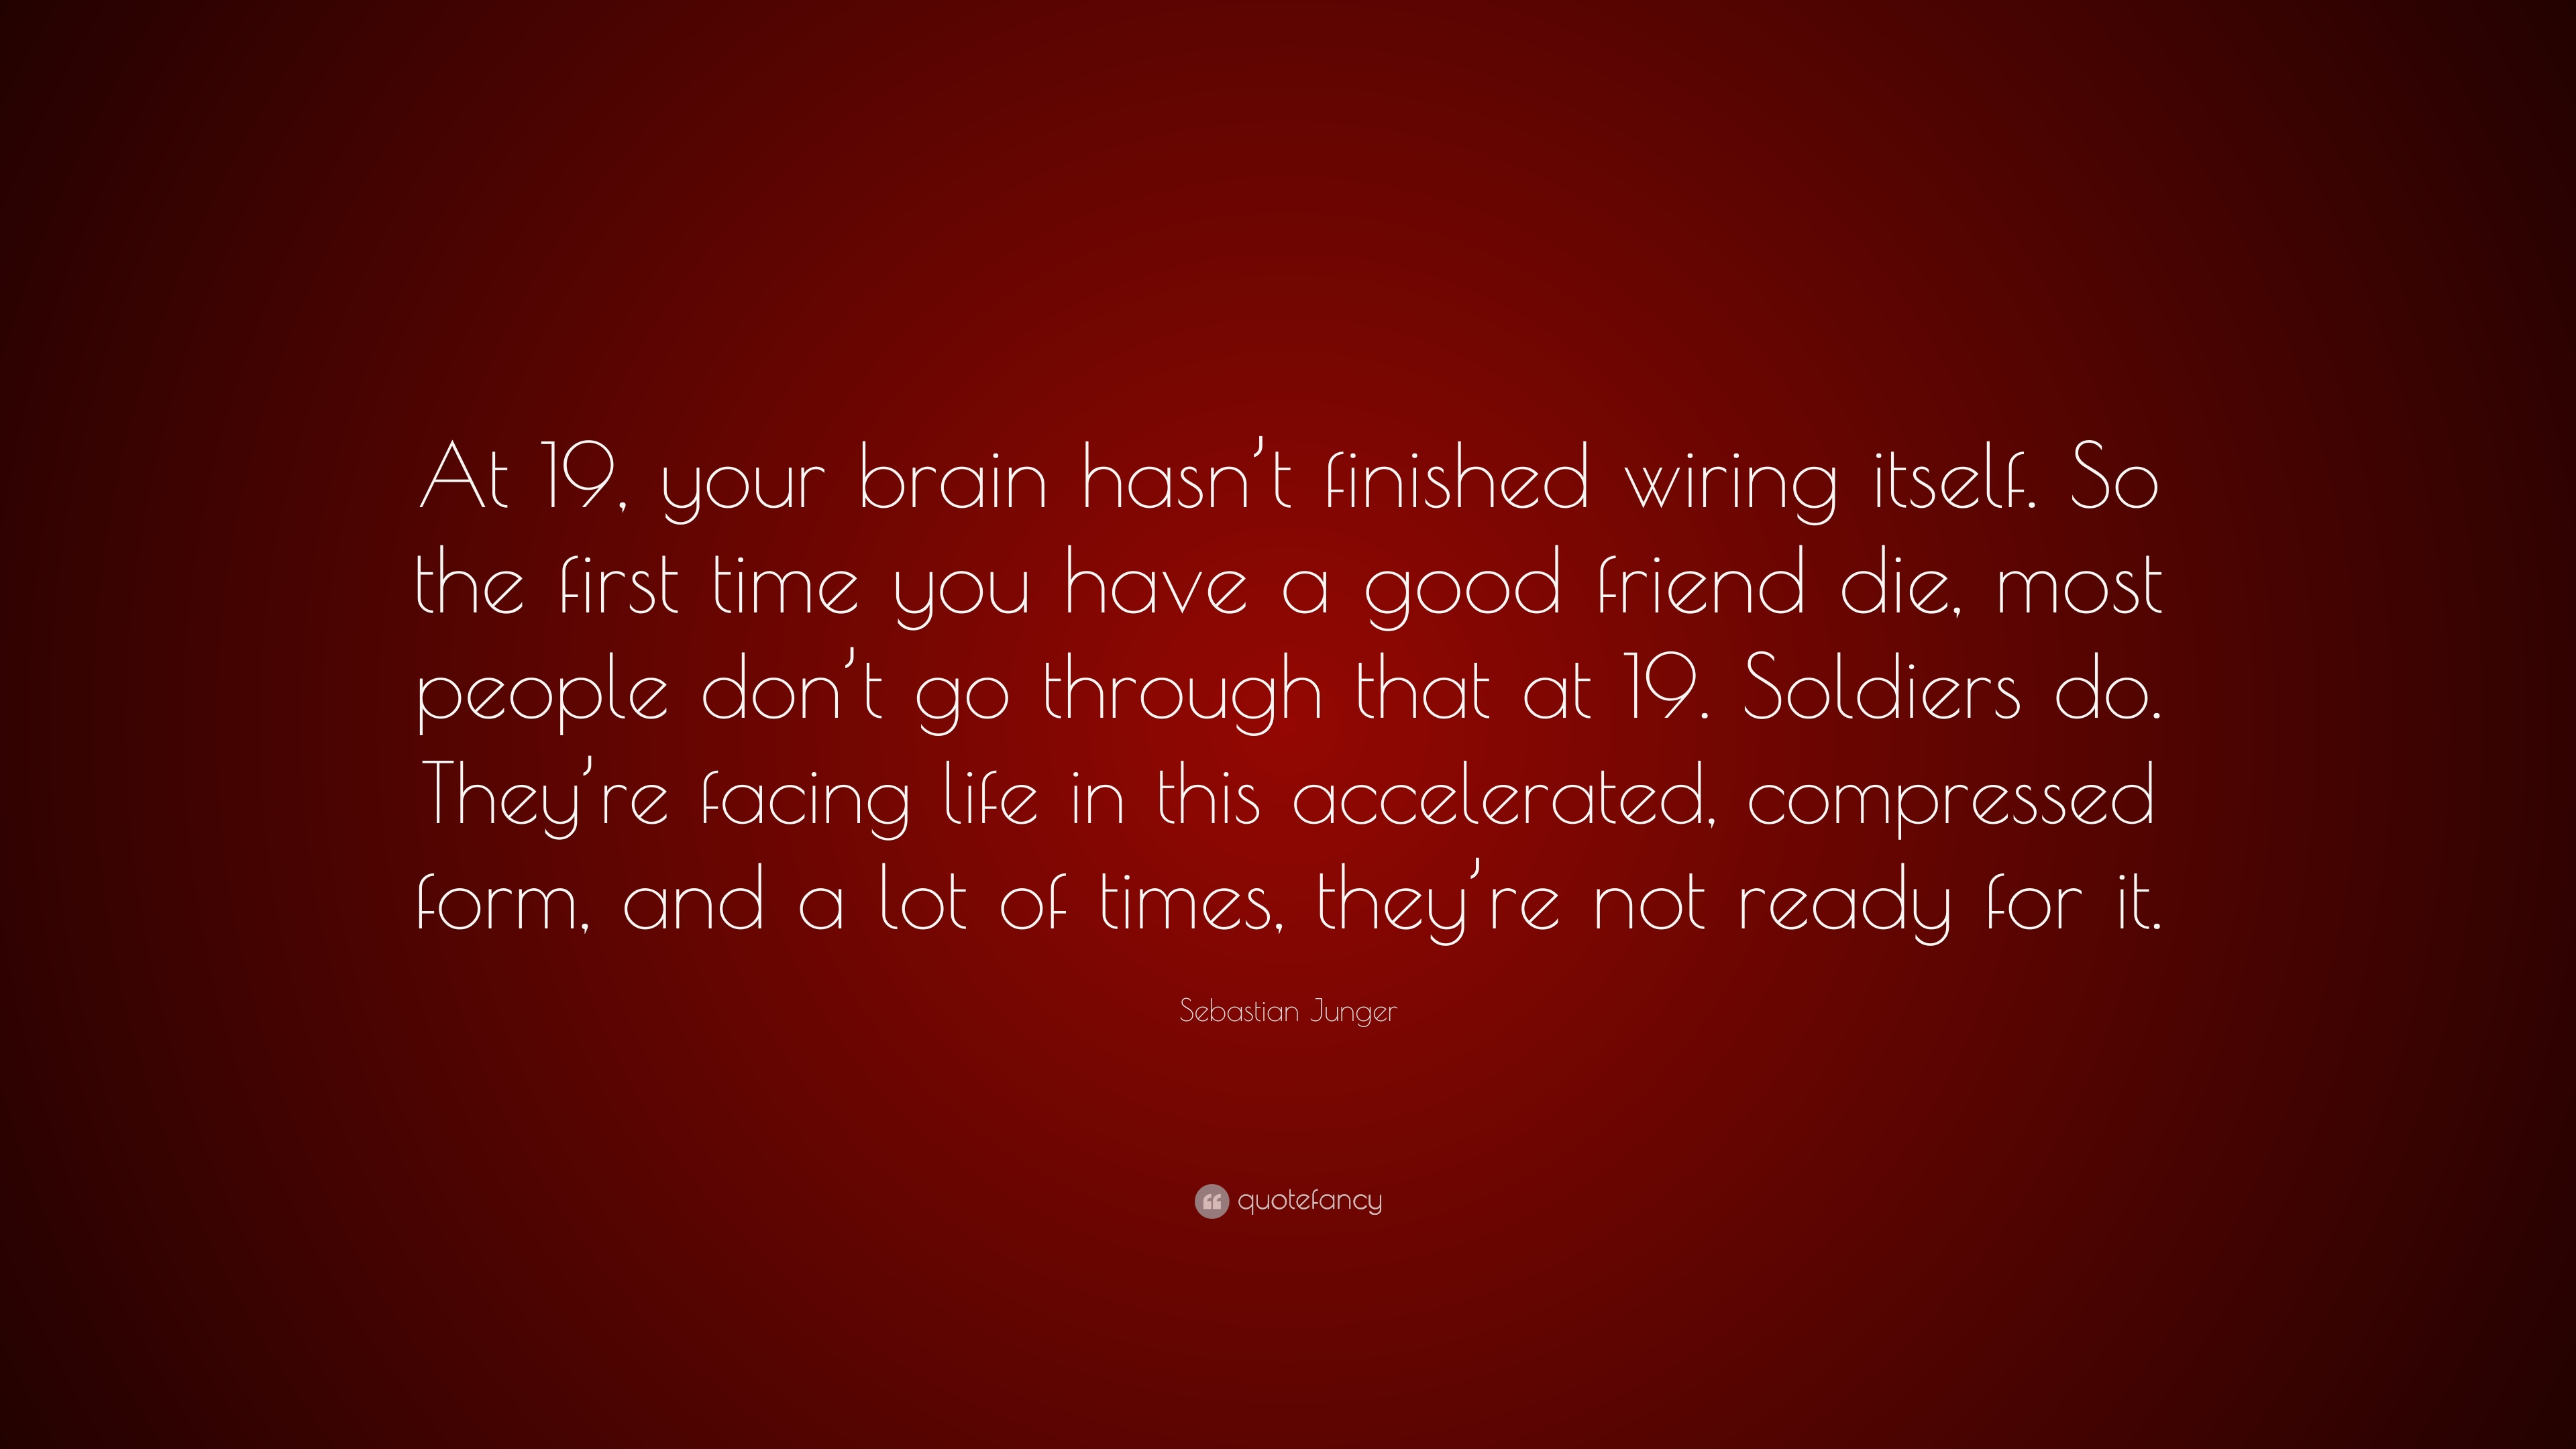 Sebastian Junger Quote At 19 Your Brain Hasnt Finished Wiring Of The Itself